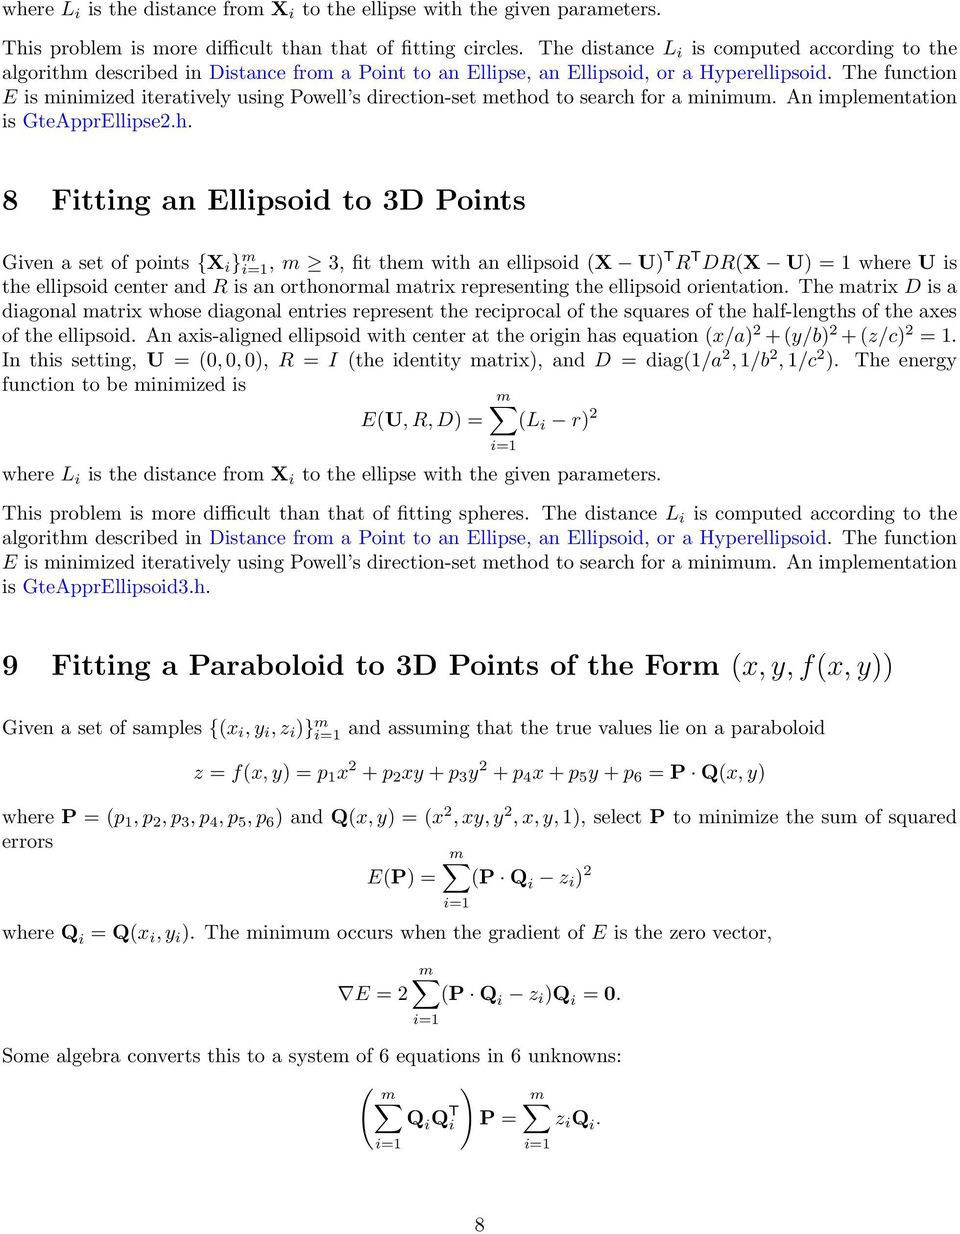 The functon E s nzed teratvely usng Powell s drecton-set ethod to search for a nu. An pleentaton s GteApprEllpse2.h. 8 Fttng an Ellpsod to 3D Ponts Gven a set of ponts {X }, 3, ft the wth an ellpsod X U)T R T DRX U) = 1 where U s the ellpsod center and R s an orthonoral atrx representng the ellpsod orentaton.